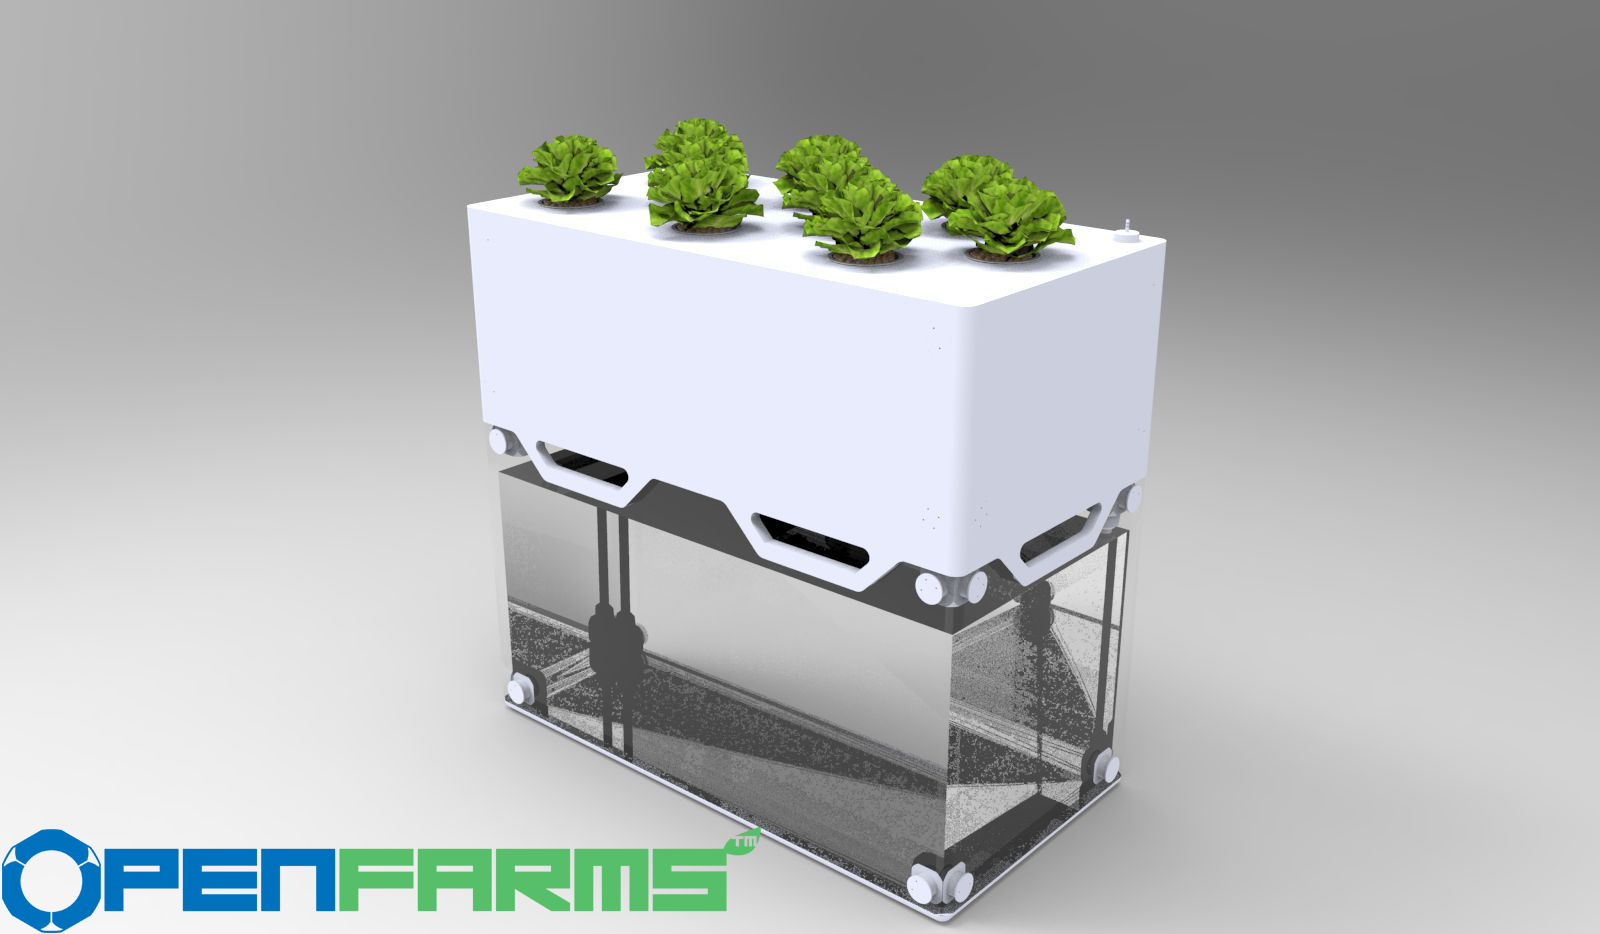 OpenFarms - image 2 - student project